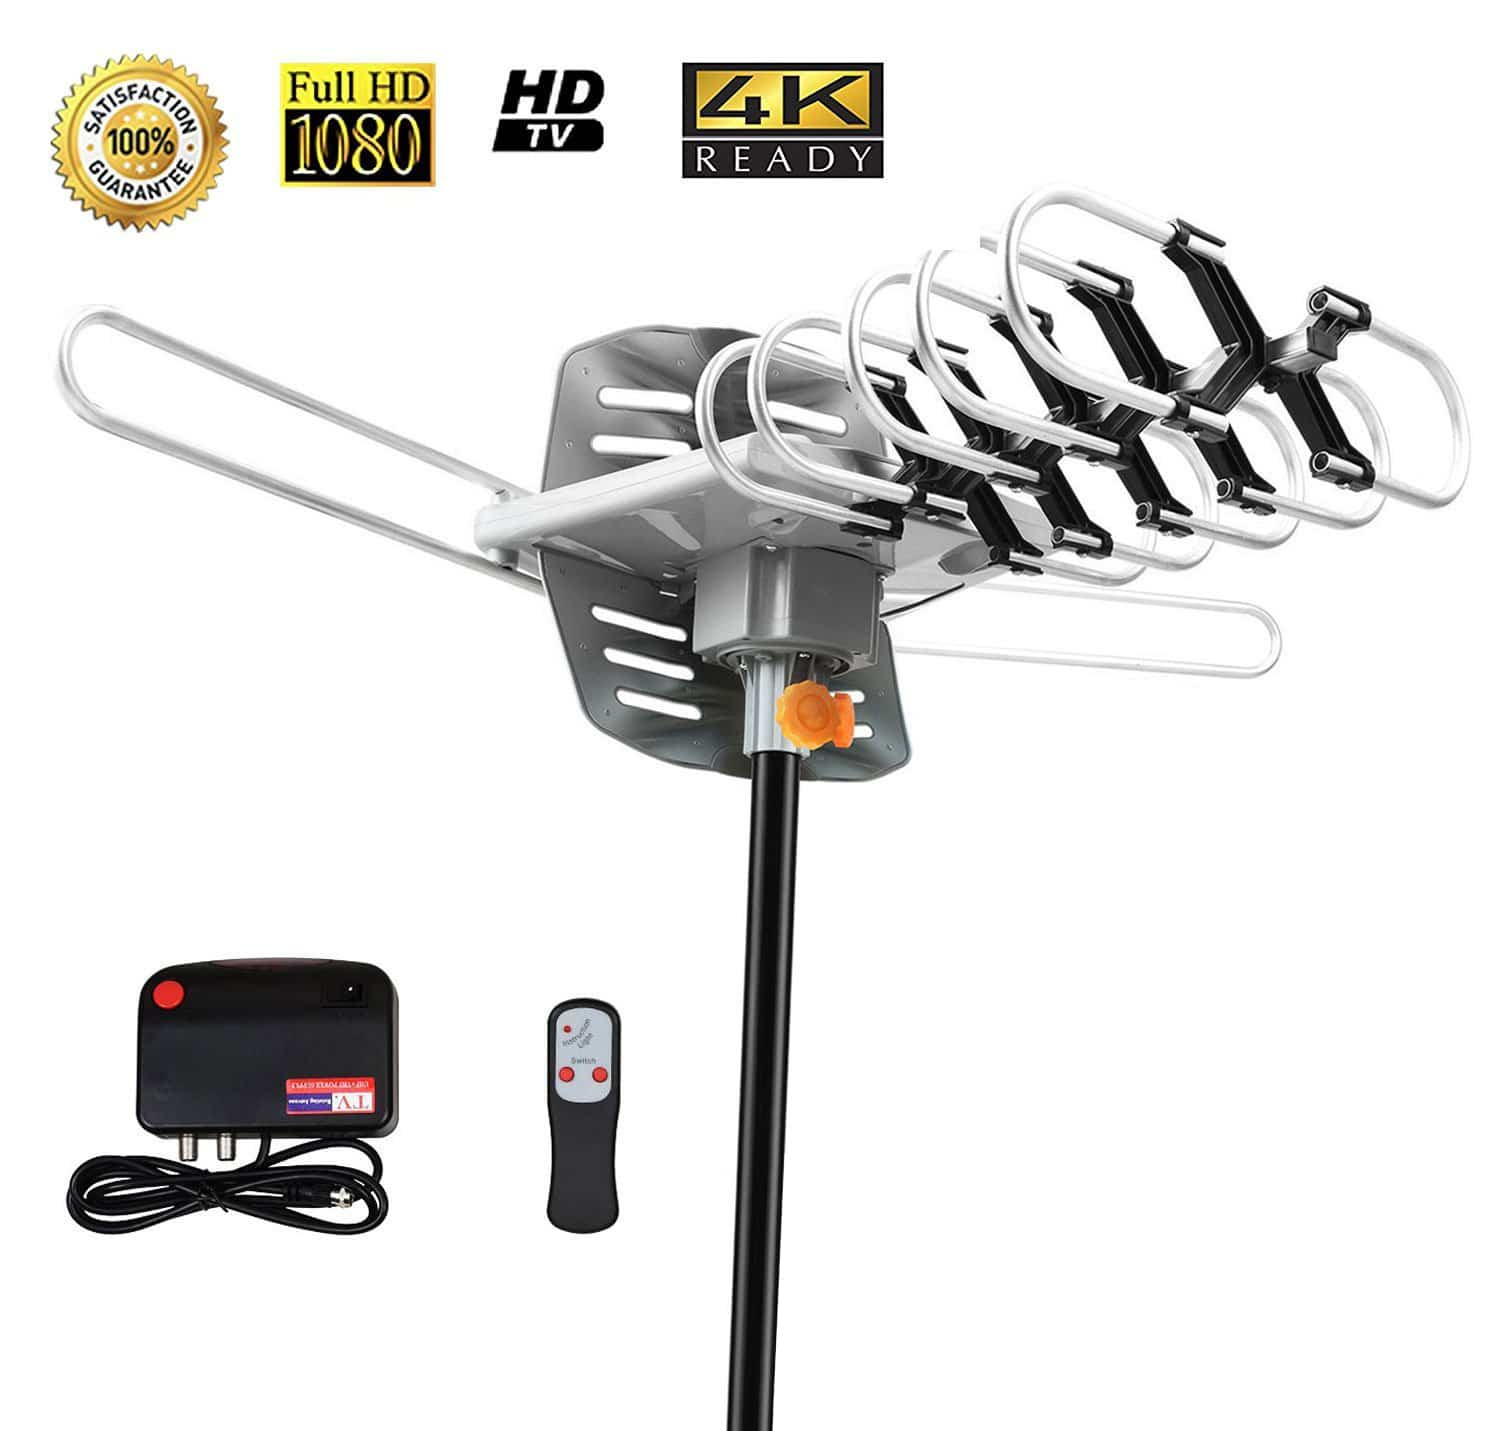 The 10 Best Outdoor Tv Antennas In 2018 4k Uhd By Omnicore Yagi Antenna Wiring Diagram Sobetter Amplified Digital Ready